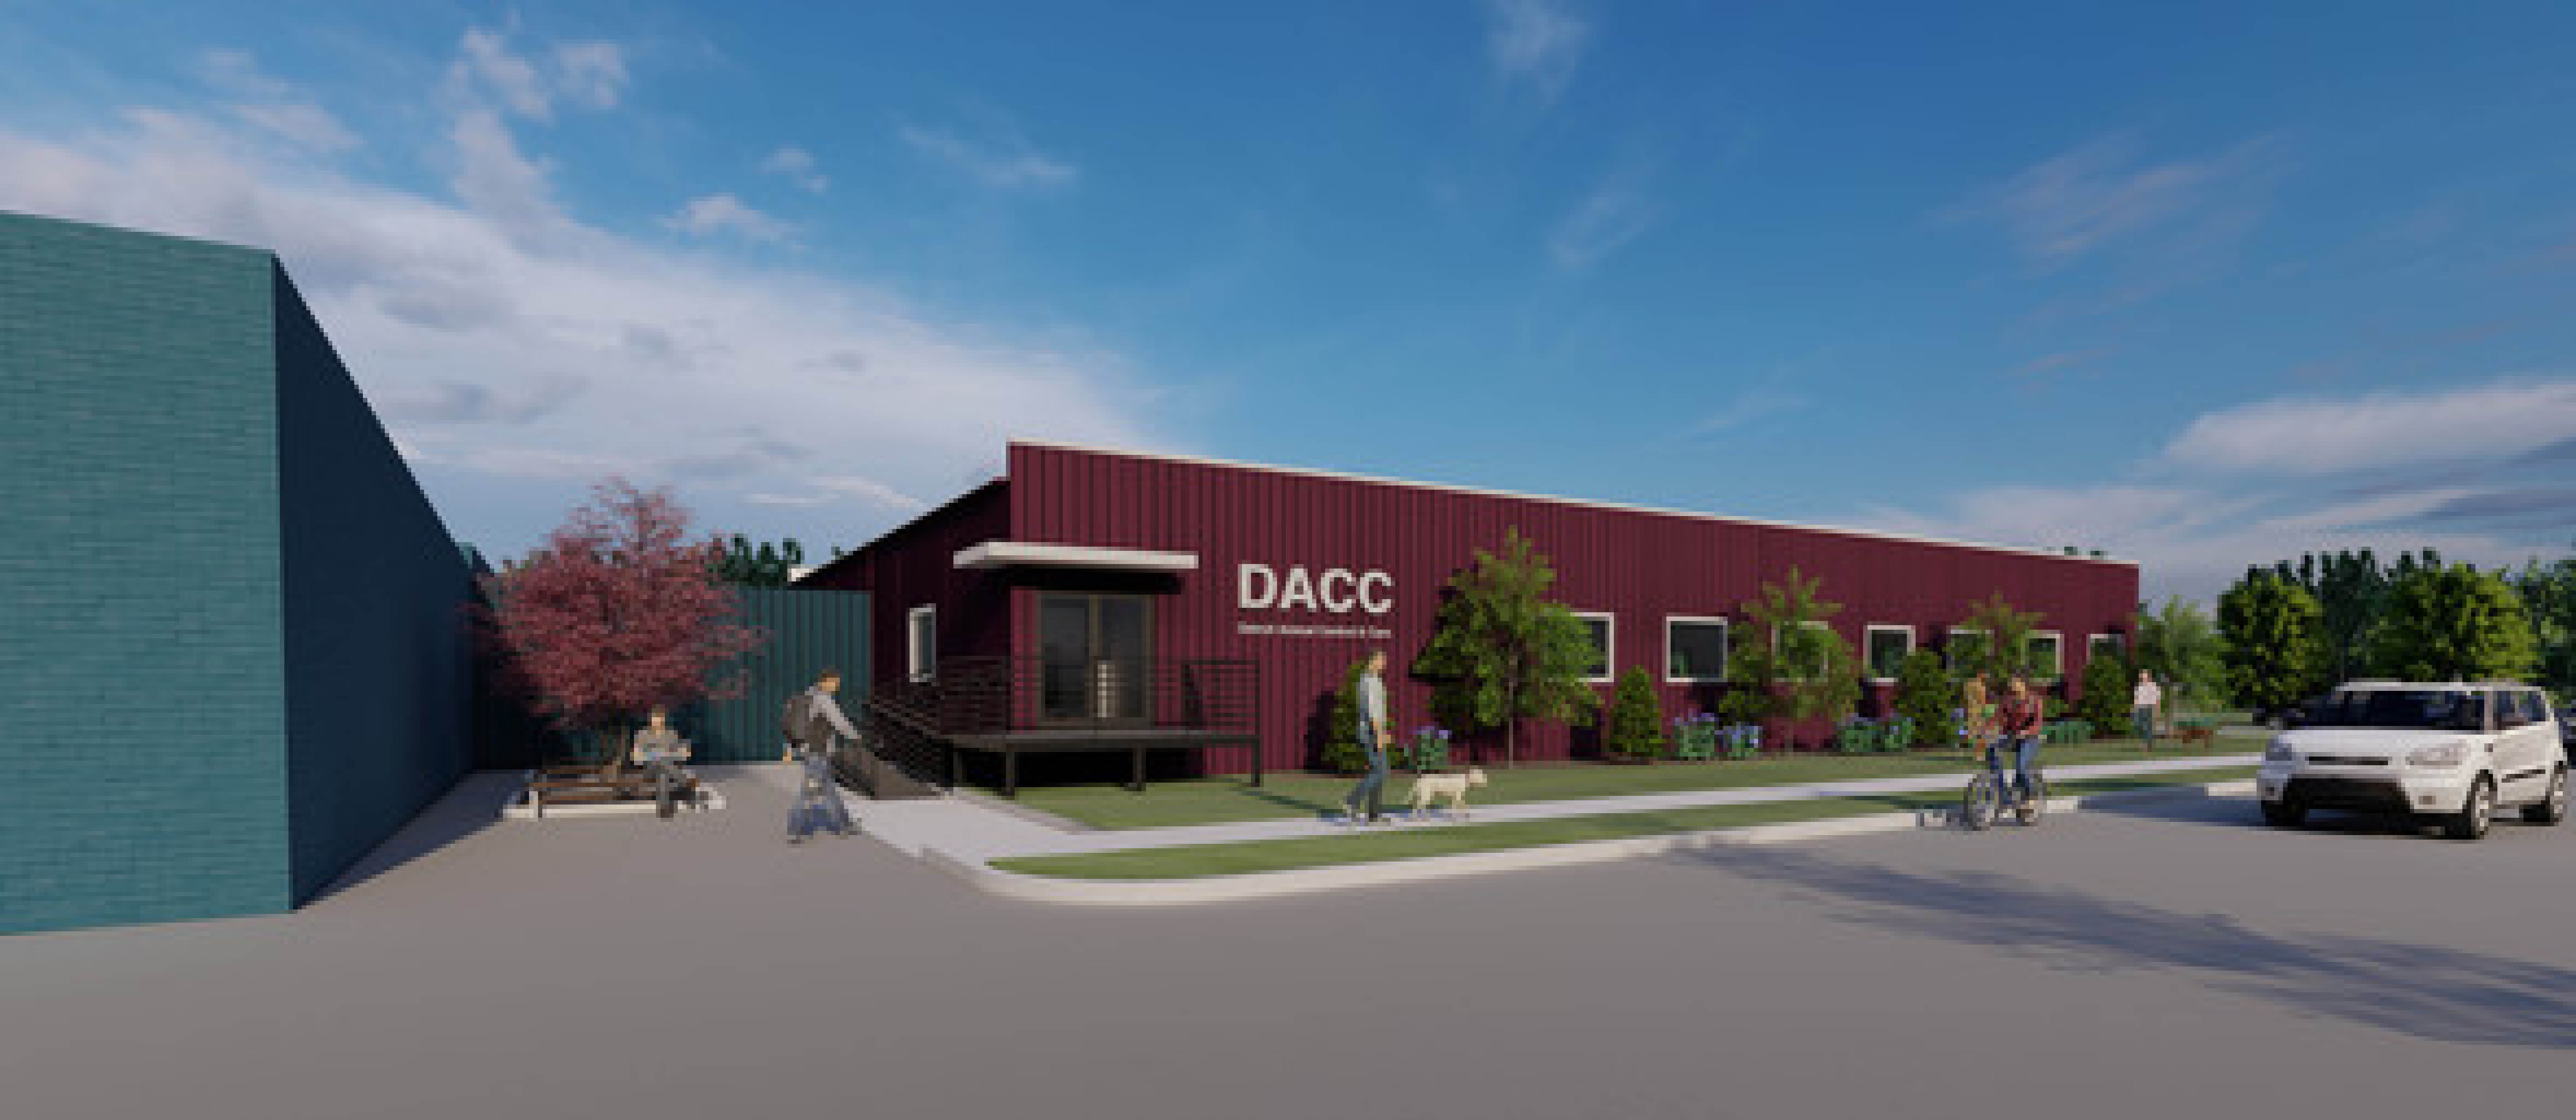 Rendering of the new DACC facility